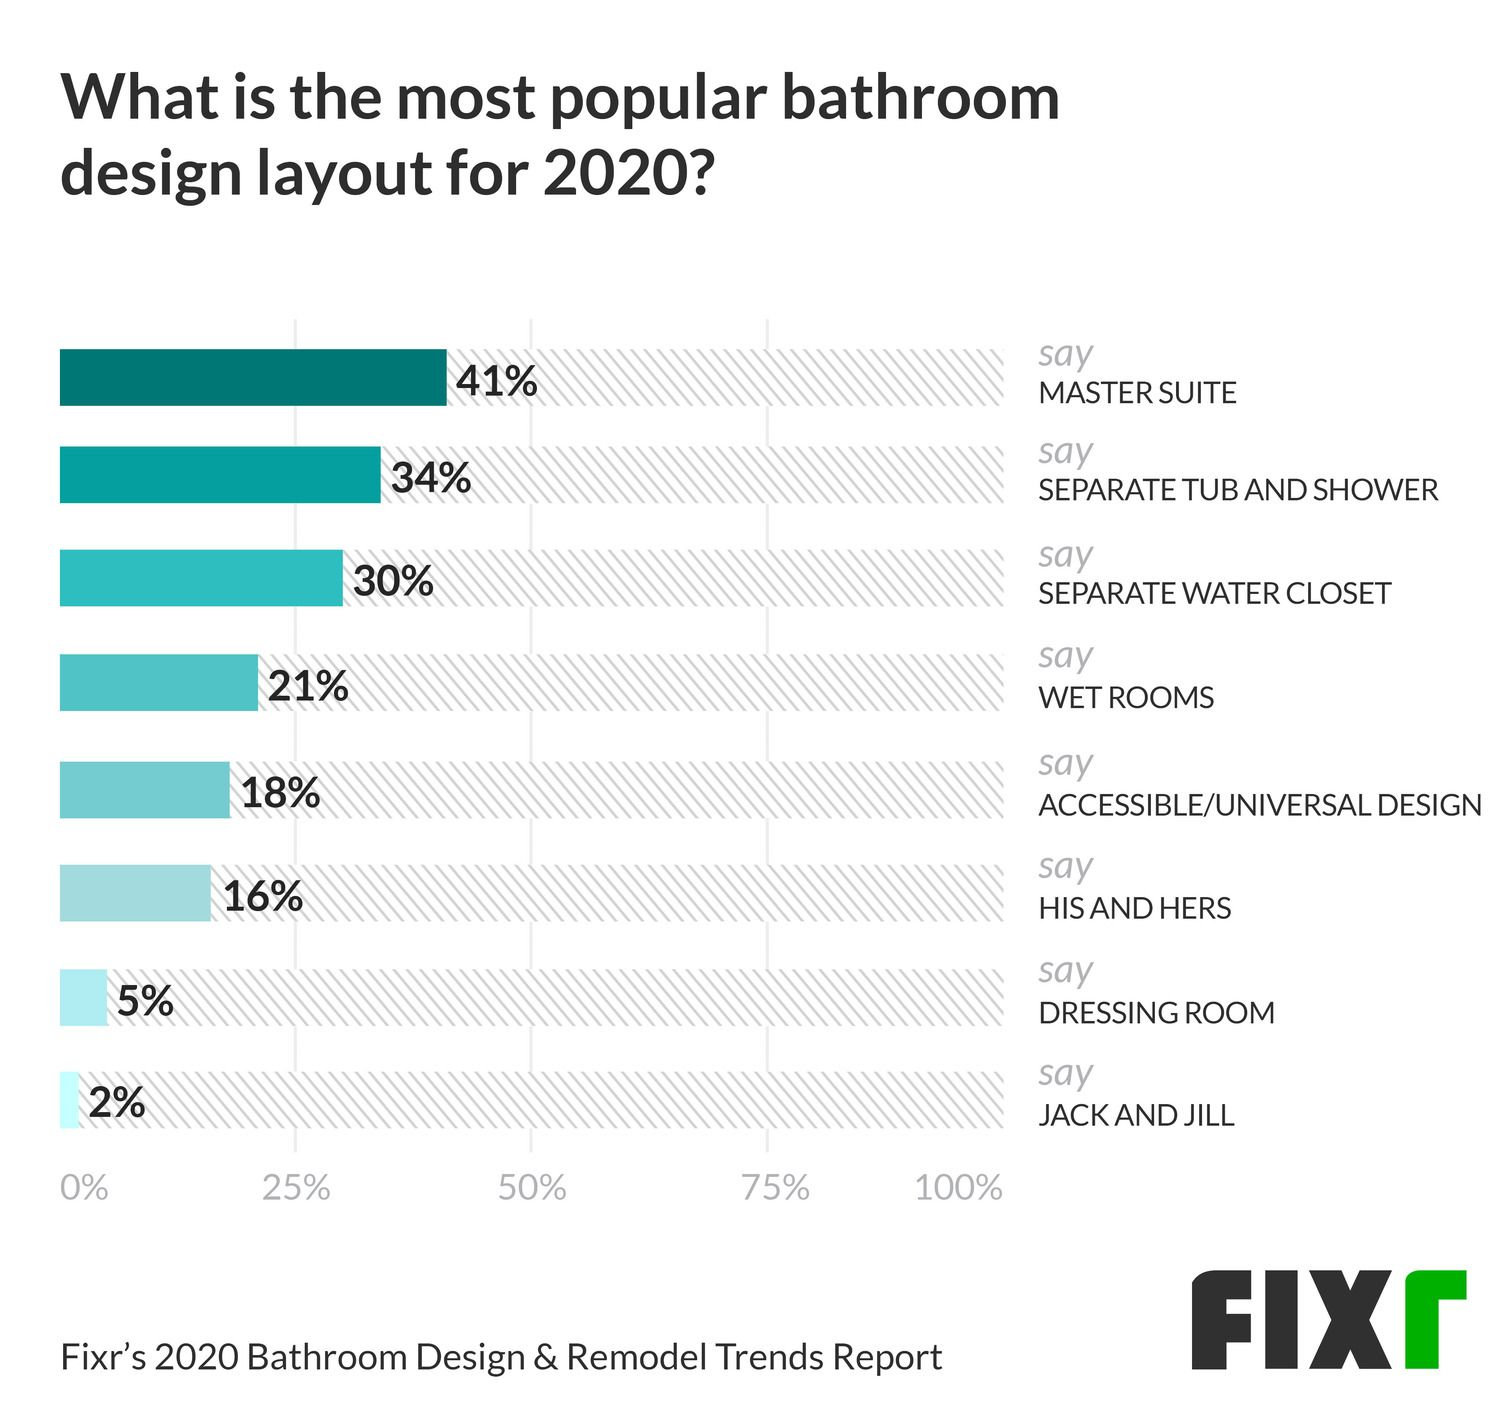 The Most Popular Bathroom Design Layout in 2020